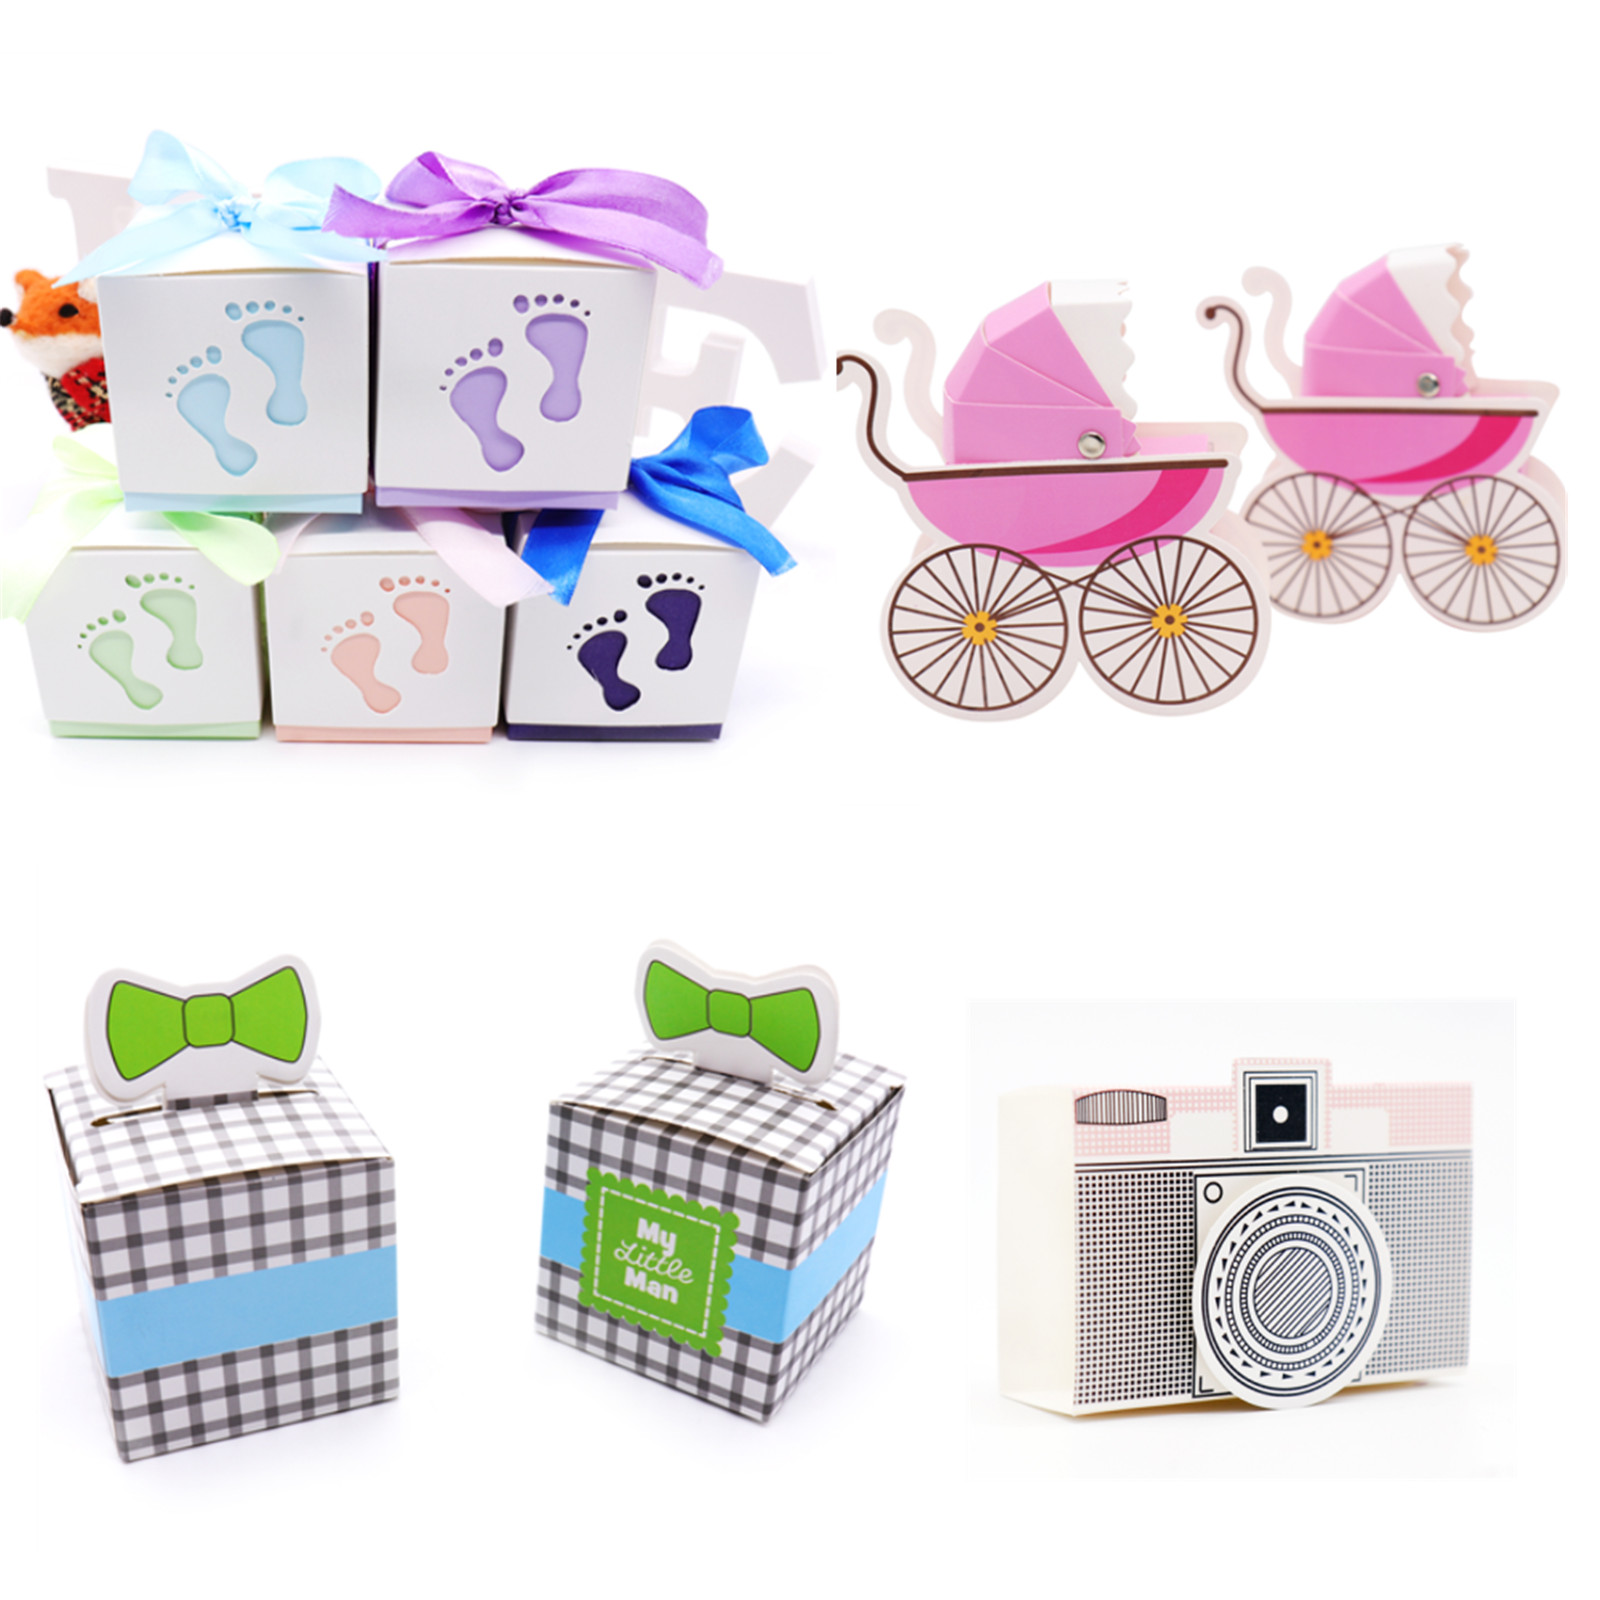 10pcs Baby Shower Decoration Baby Footprint Candy Box Kids Birthday Boy Girl Party Favor Pink/Blue Laser Cut Stroller Gift Box